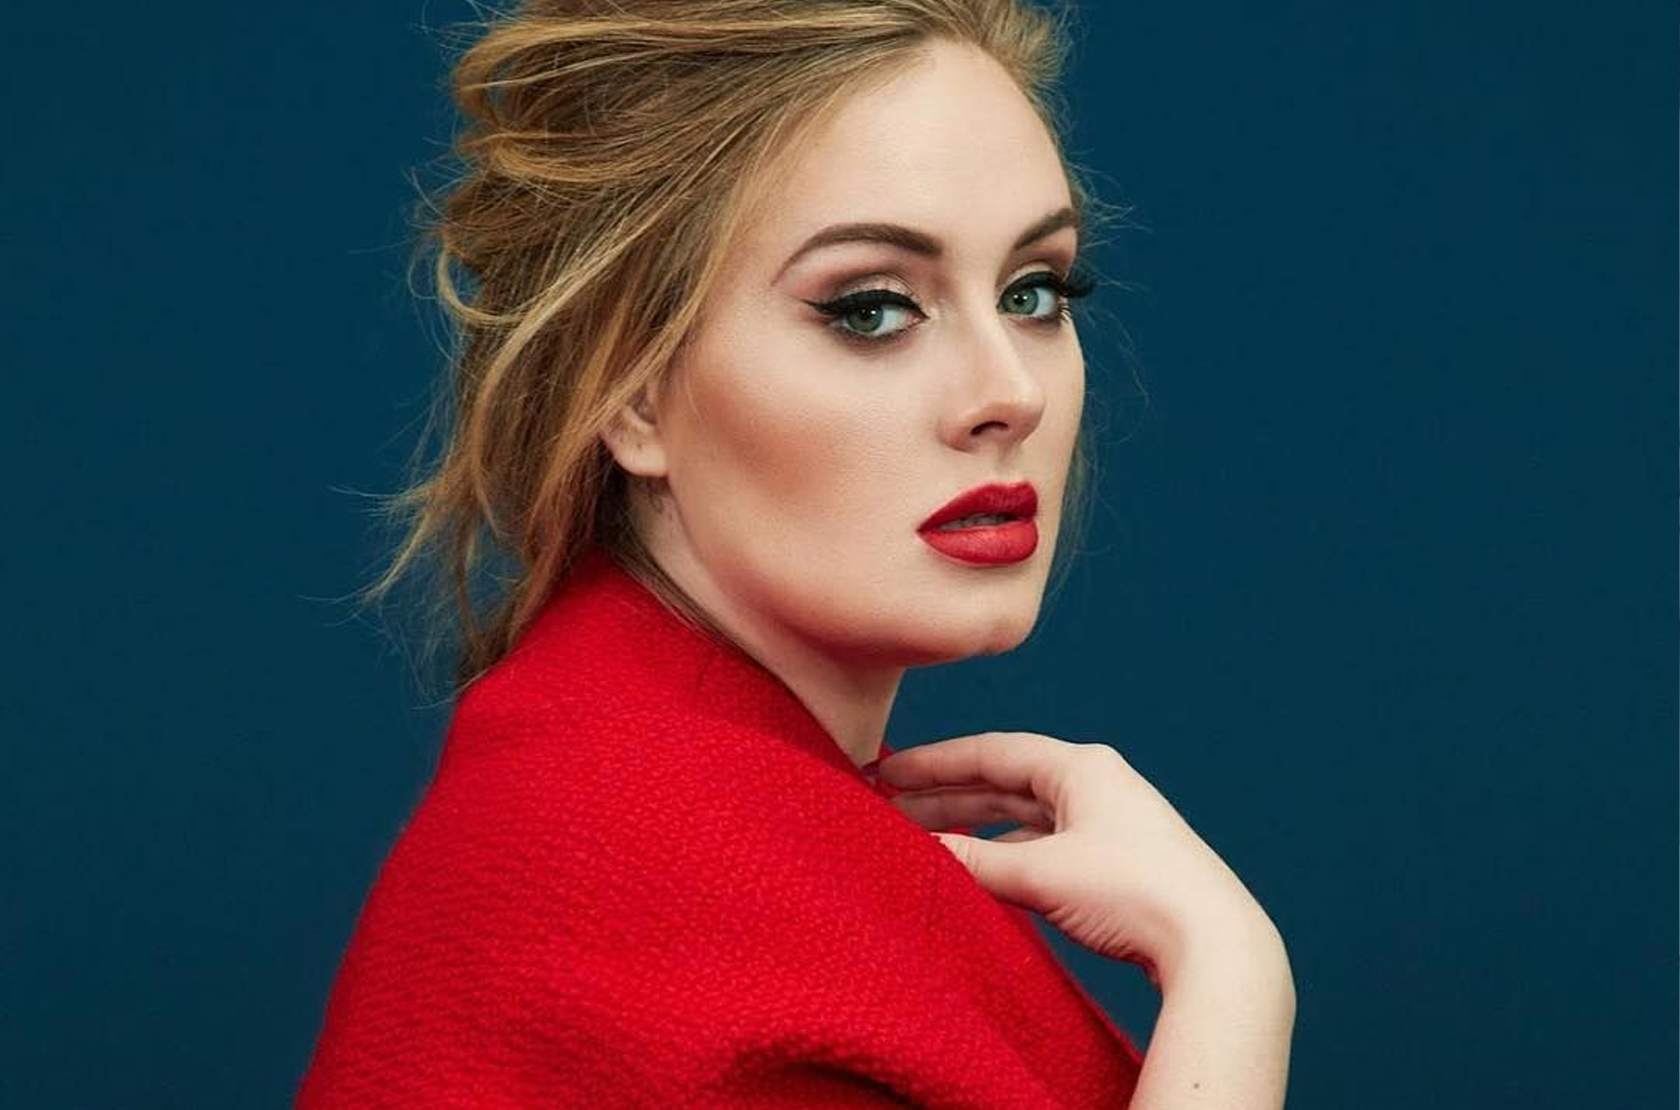 ADELE FANS SPECULATES THE RELEASE OF HER NEW ALBUM AS '30' BILLBOARDS EMERGES